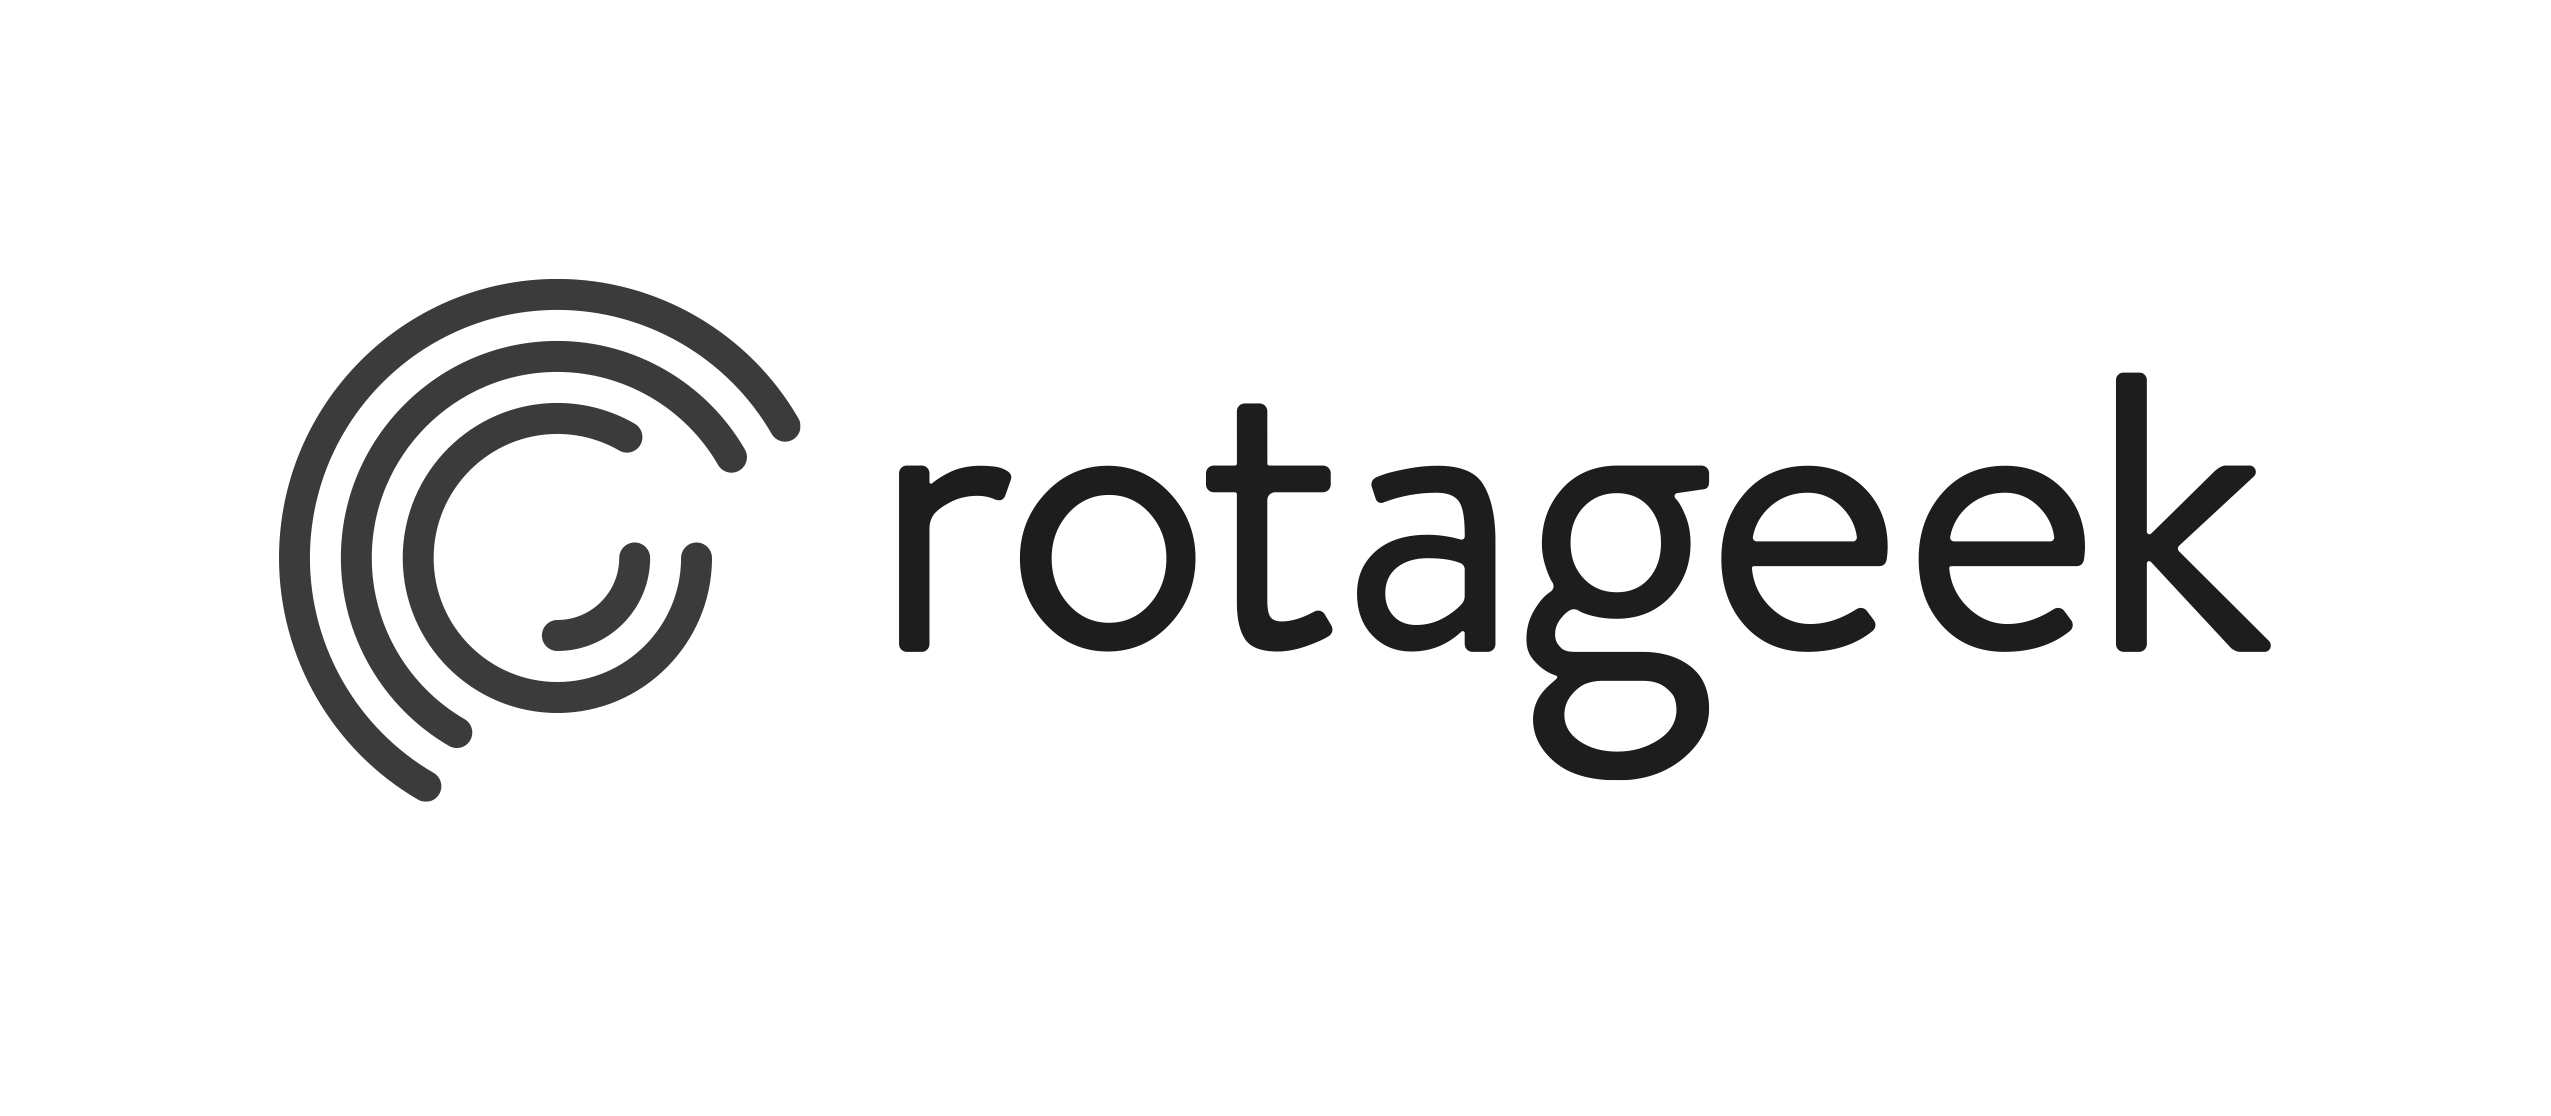 View the VentureFounders case study for RotaGeek.